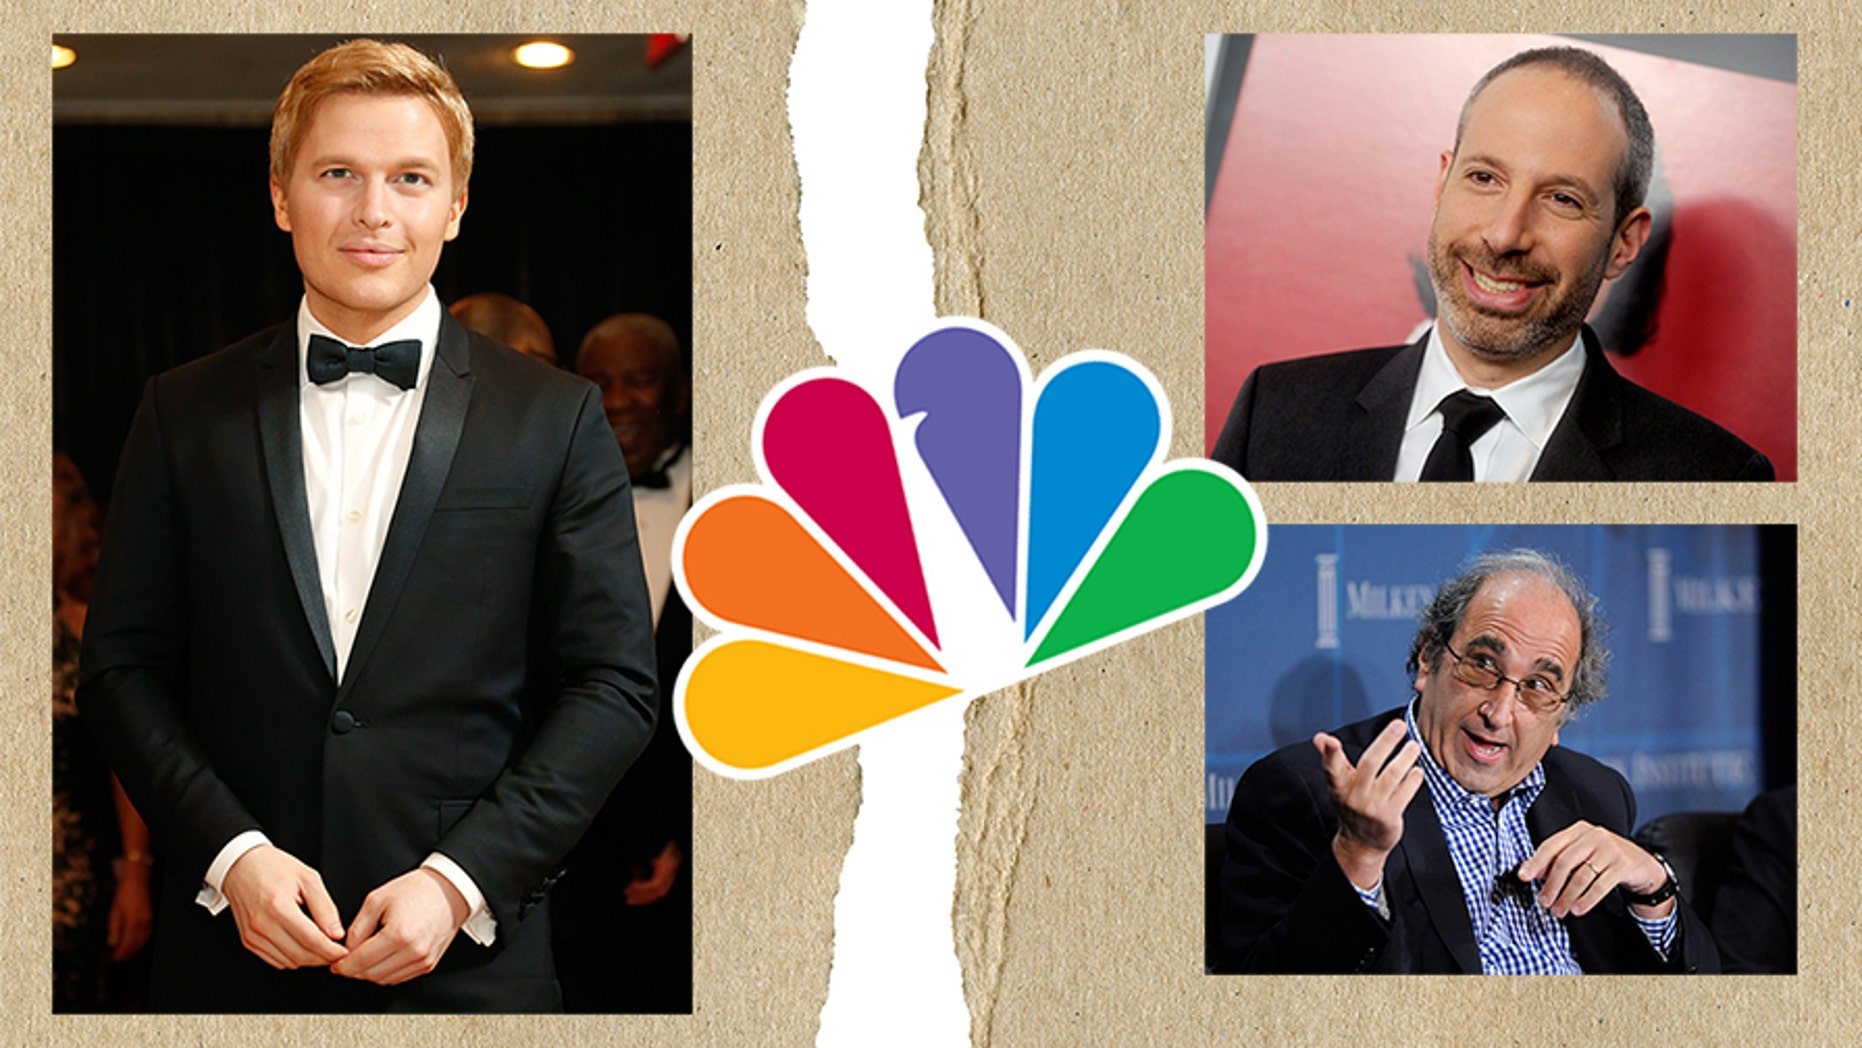 Ronan Farrow wins a Pulitzer Prize after NBC News executives Noah Oppenheim and Andy Lack spiked his reporting on Harvey Weinstein.